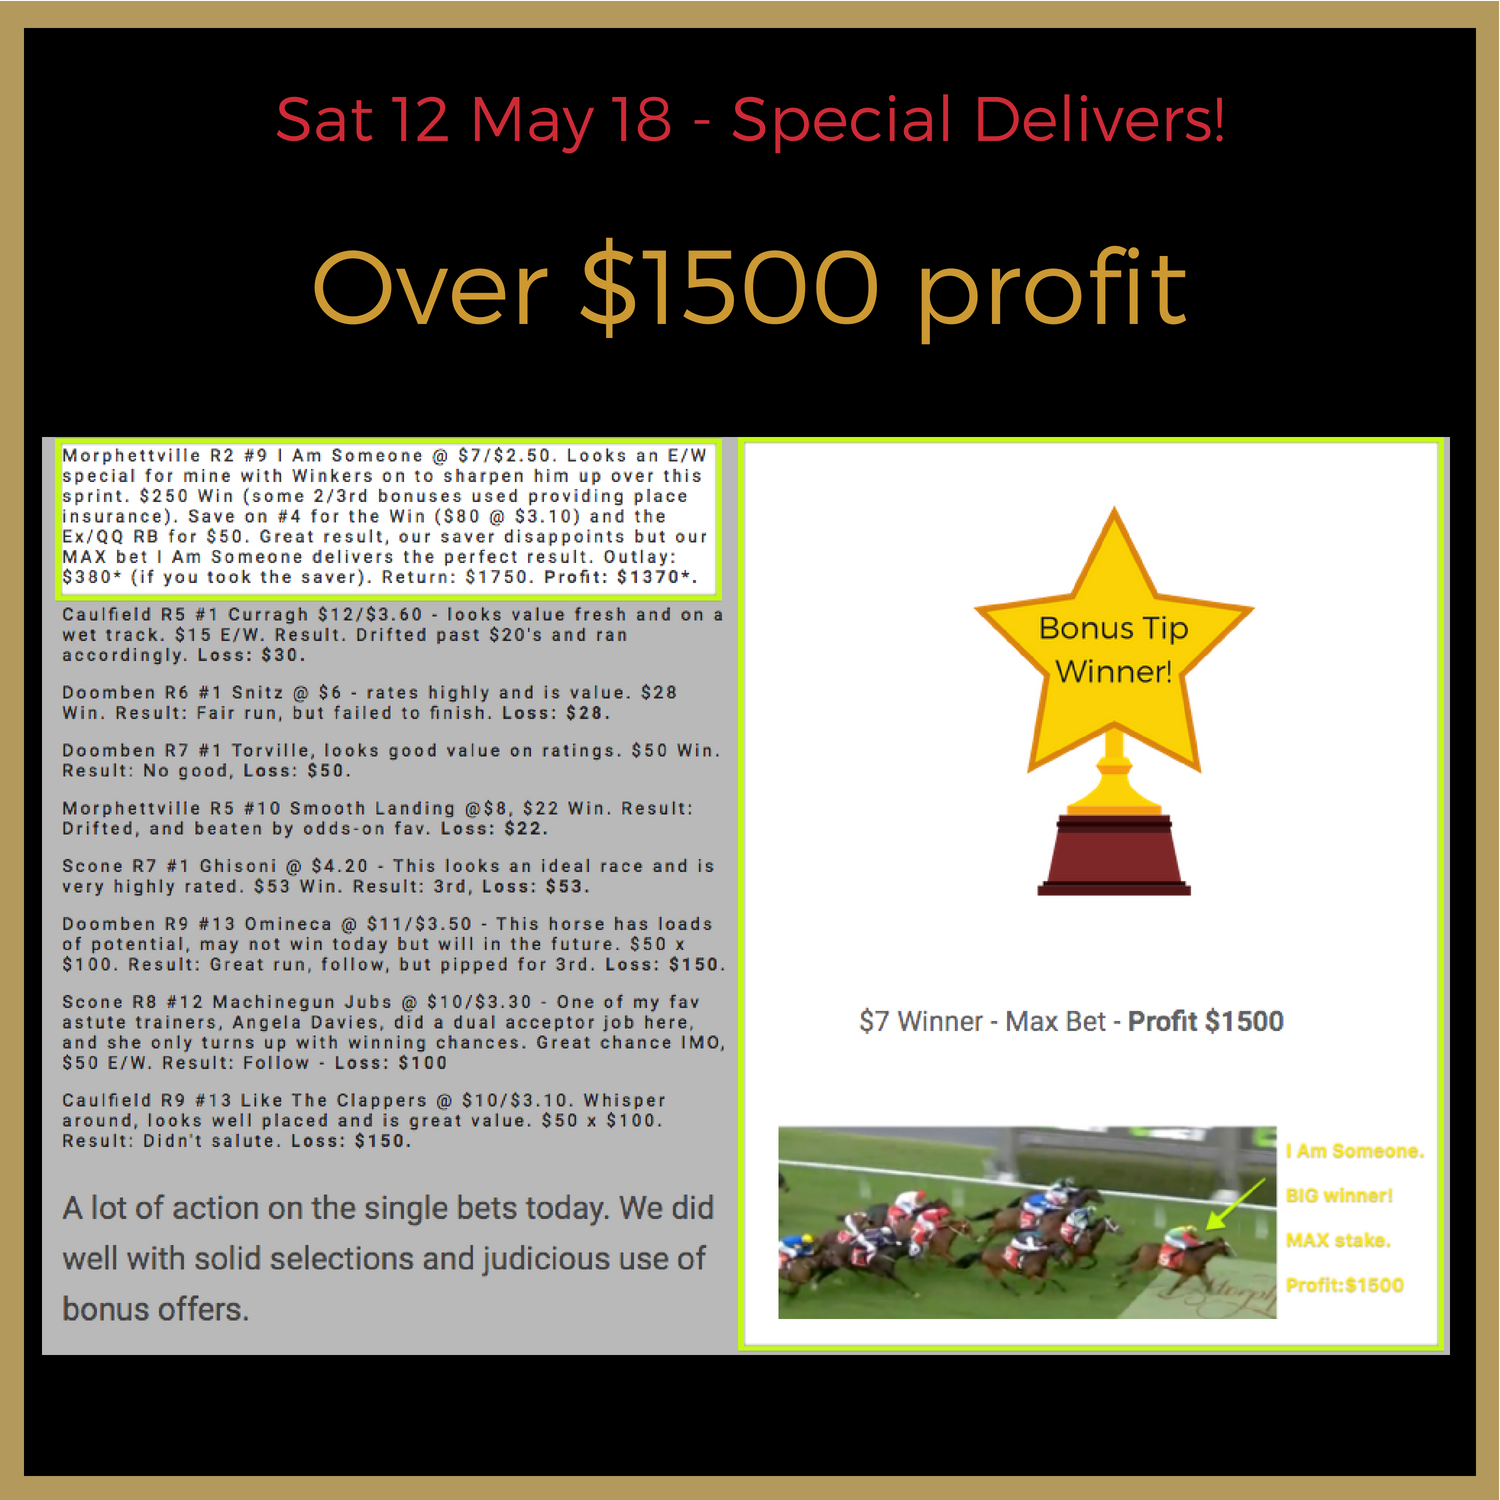 Our E/W Special at $7 with Max Stake Wins. We not only tip but  we provide the reasons for the selections  being taken to  educate  you. In this instance, the winkers, a piece of gear - made all the difference as we noted.